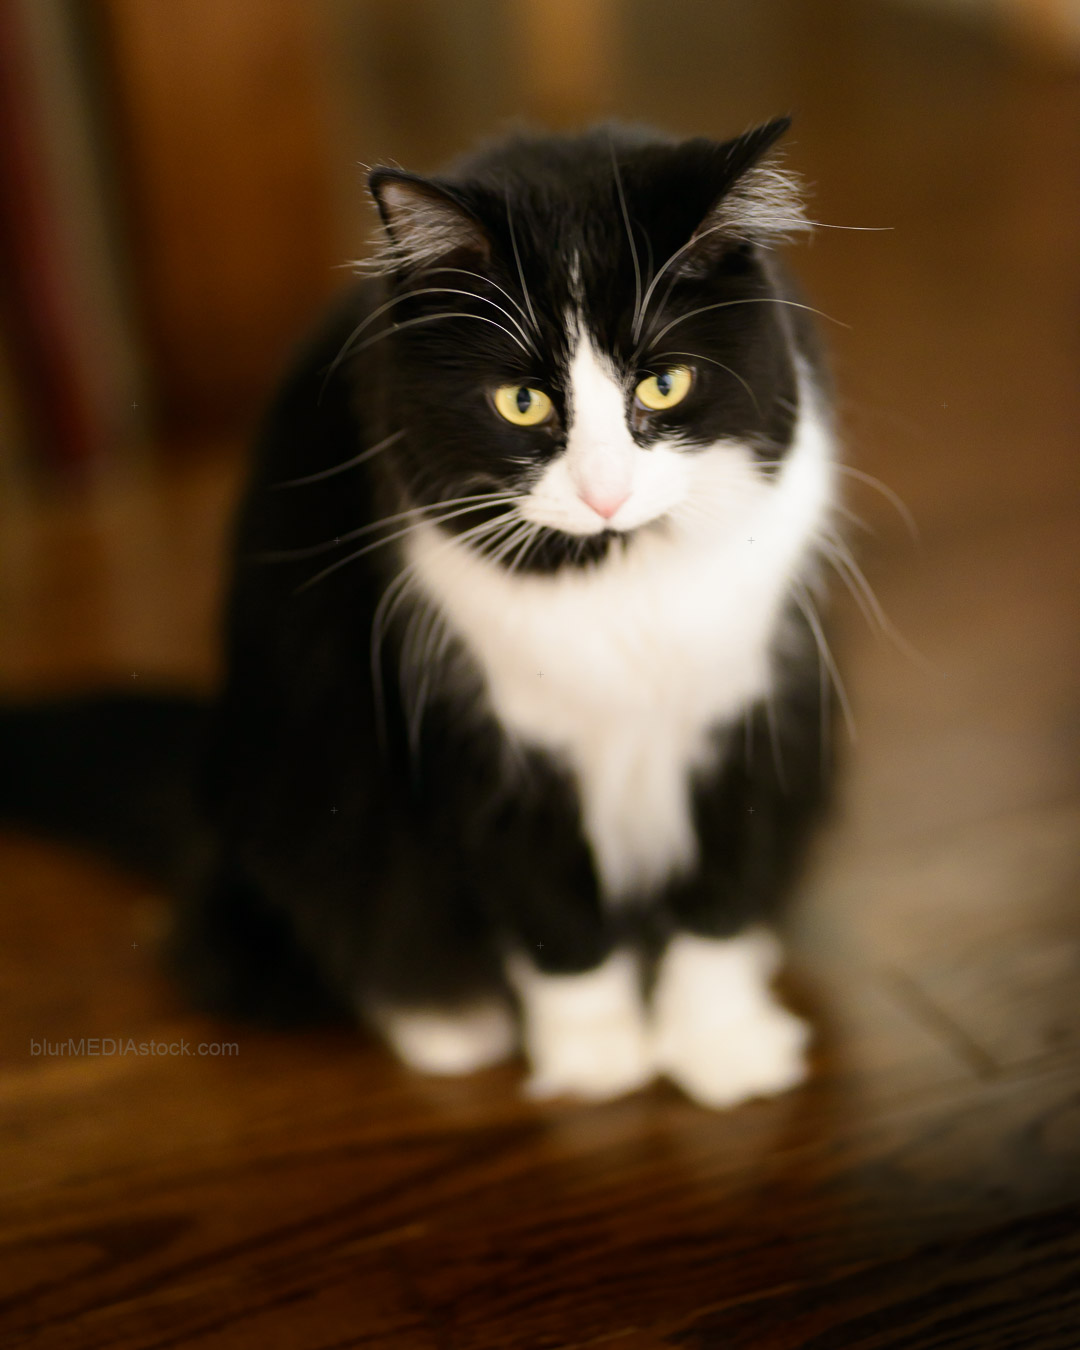 Black and white cat sitting on a wood floor